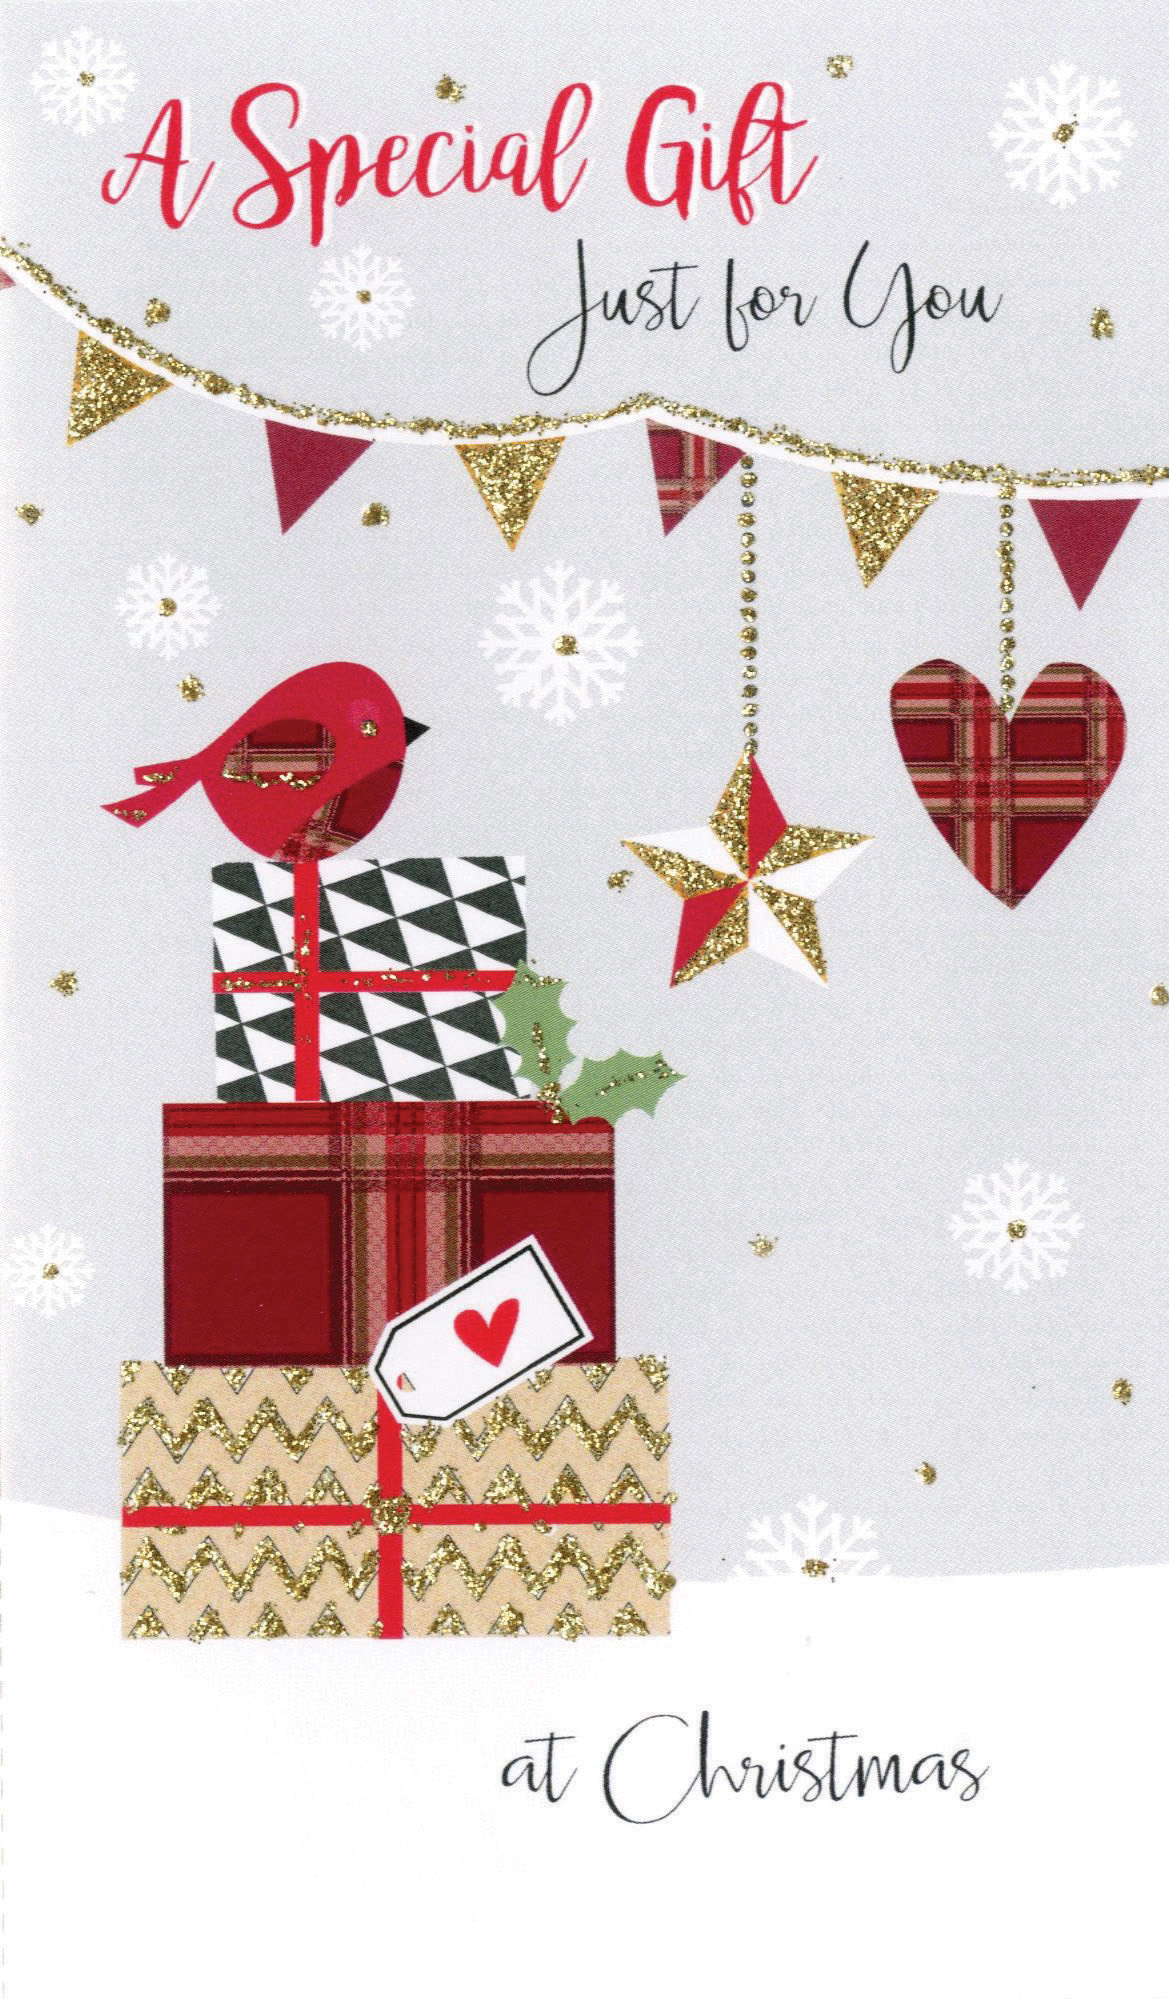 A Christmas Gift Moneyholder Christmas Gift Card | Cards